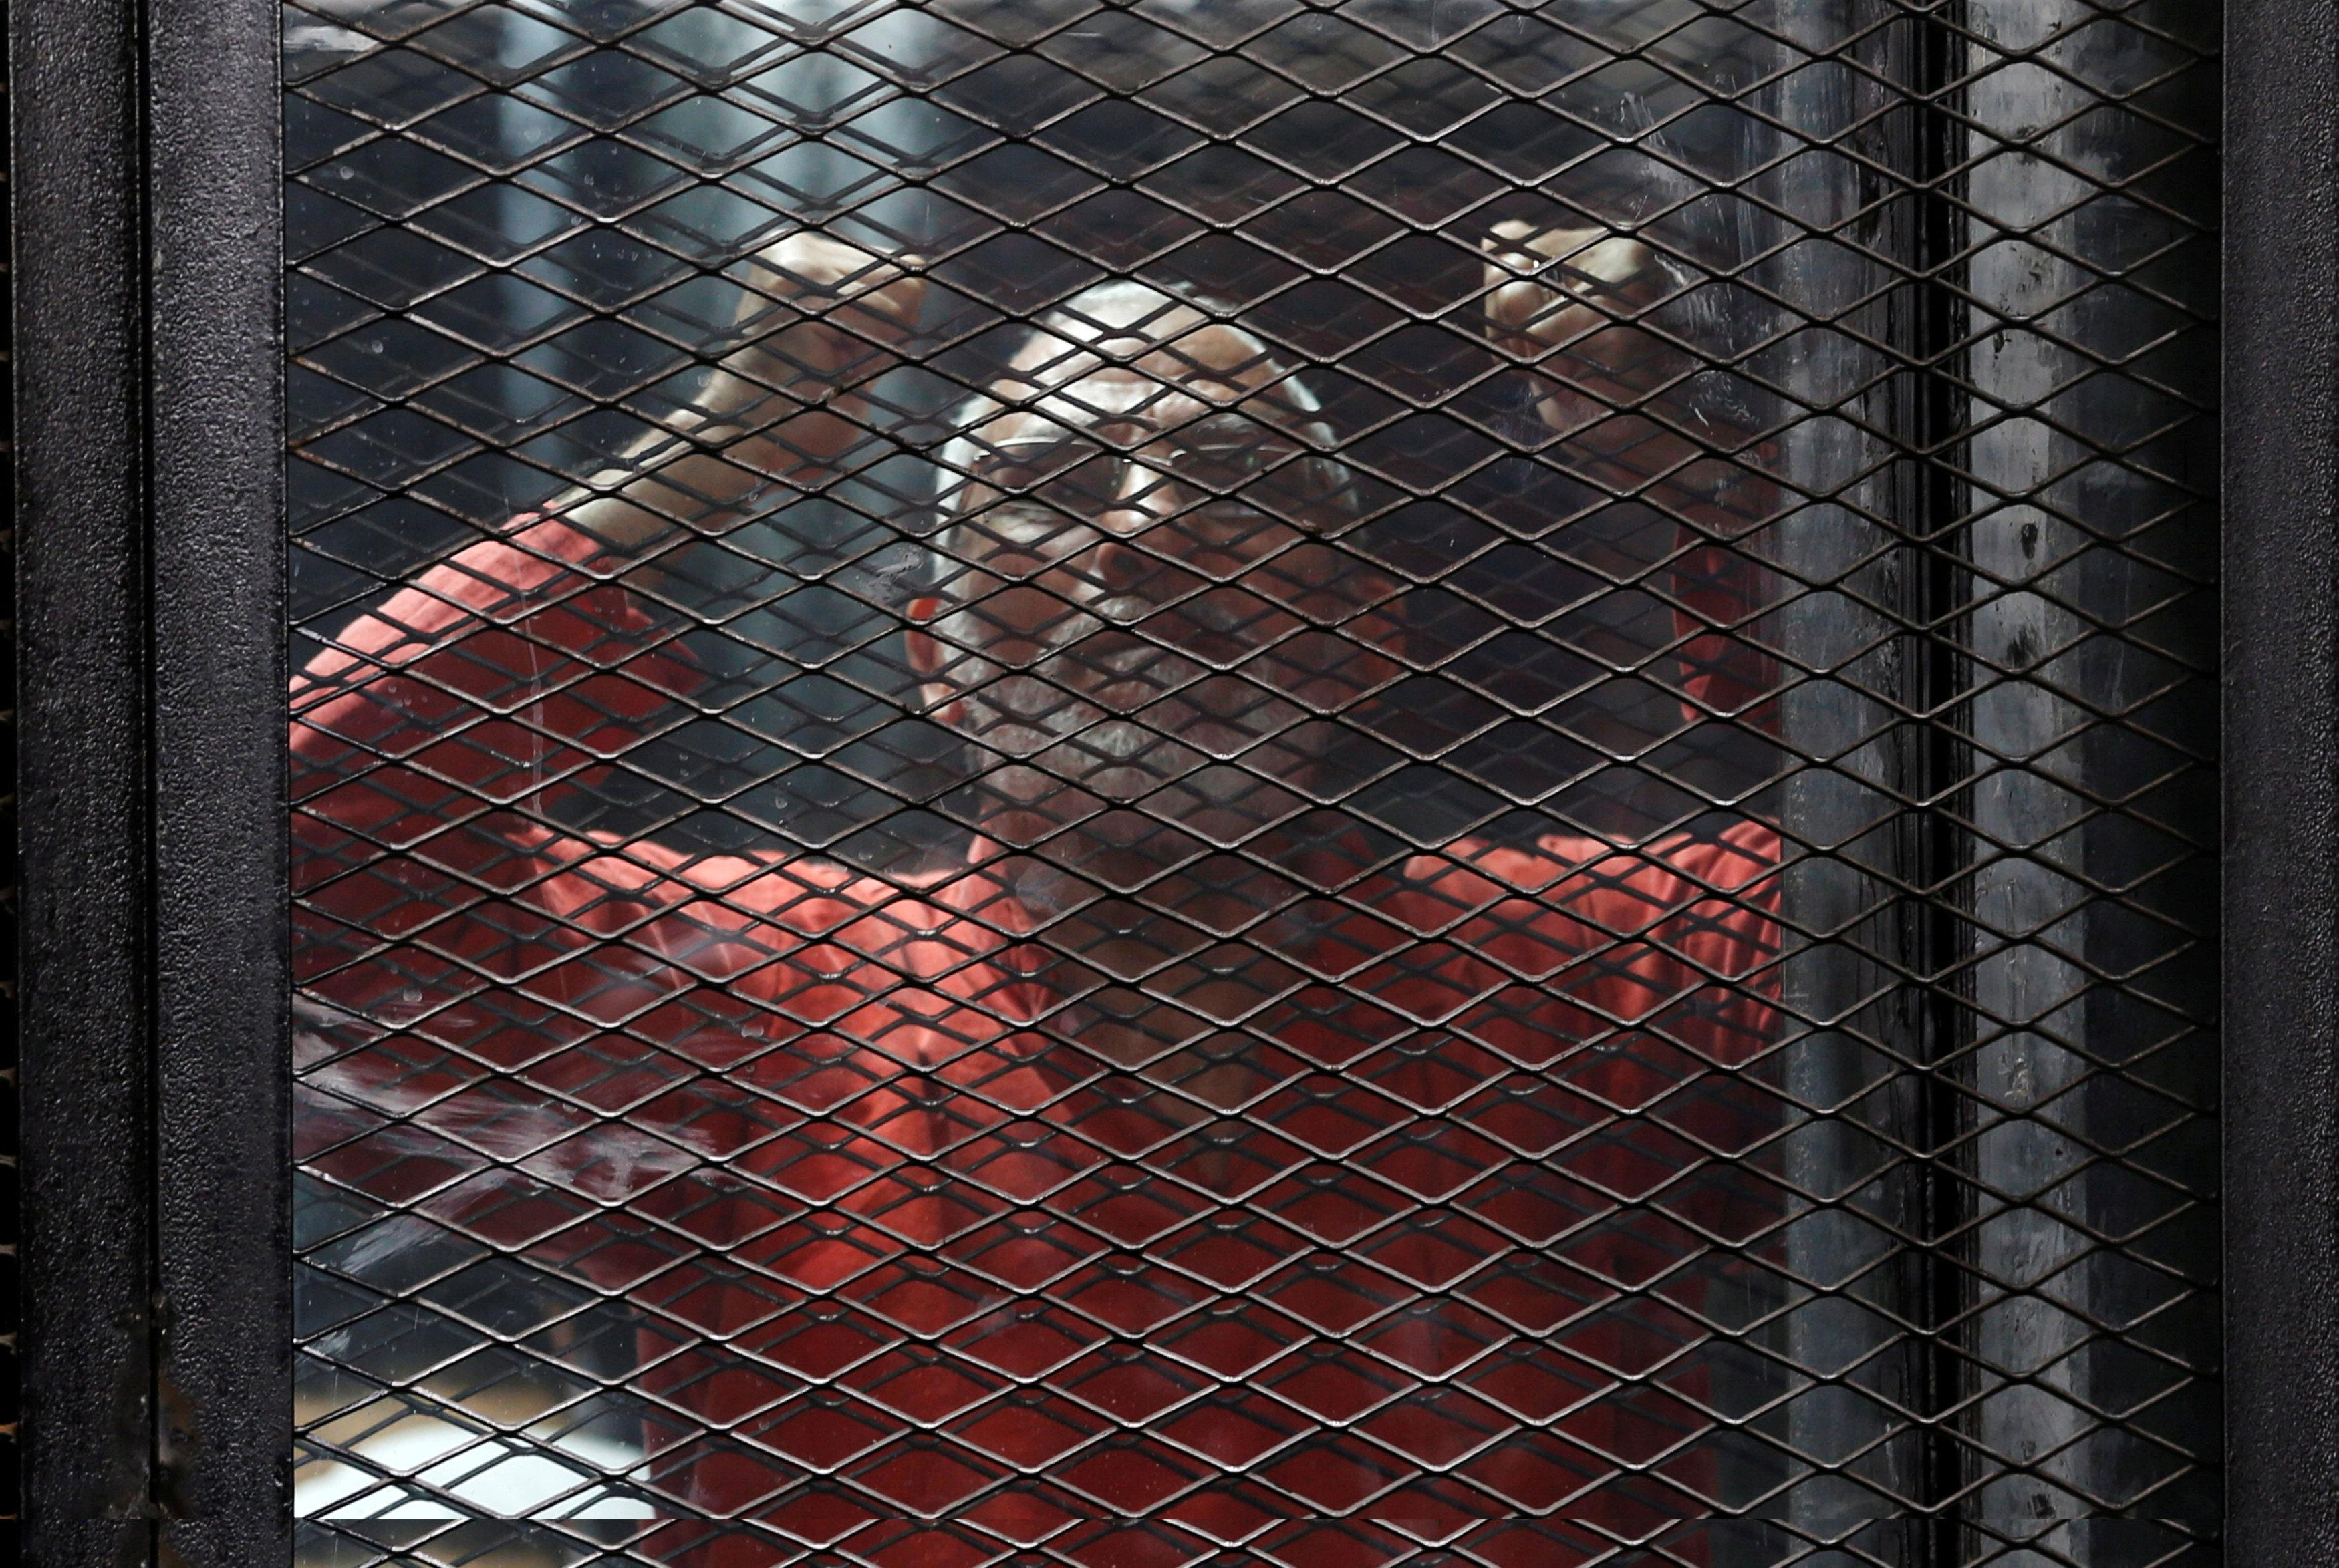 Muslim Brotherhood leader Mohamed Badie shouts slogans against the Interior Ministry during a trial at a court on the outskirts of Cairo, Egypt May 31, 2016.  Amr Dalsh